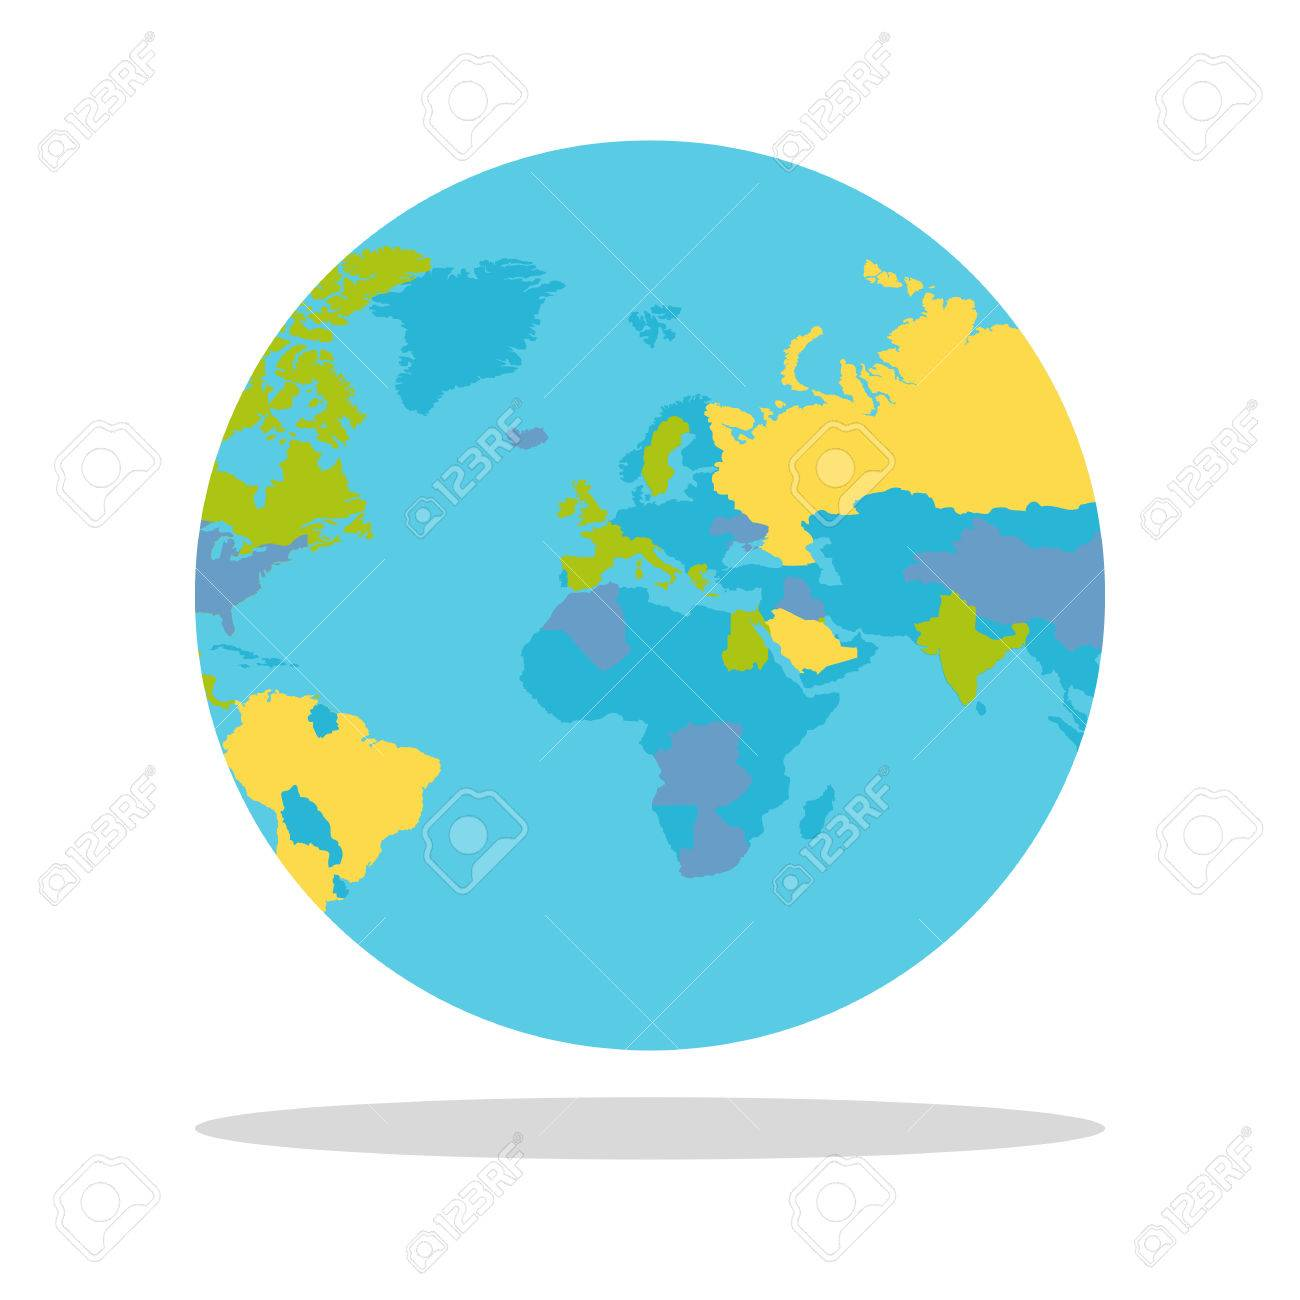 Planet earth vector illustration world globe with political planet earth vector illustration world globe with political map countries silhouettes on the planet gumiabroncs Image collections